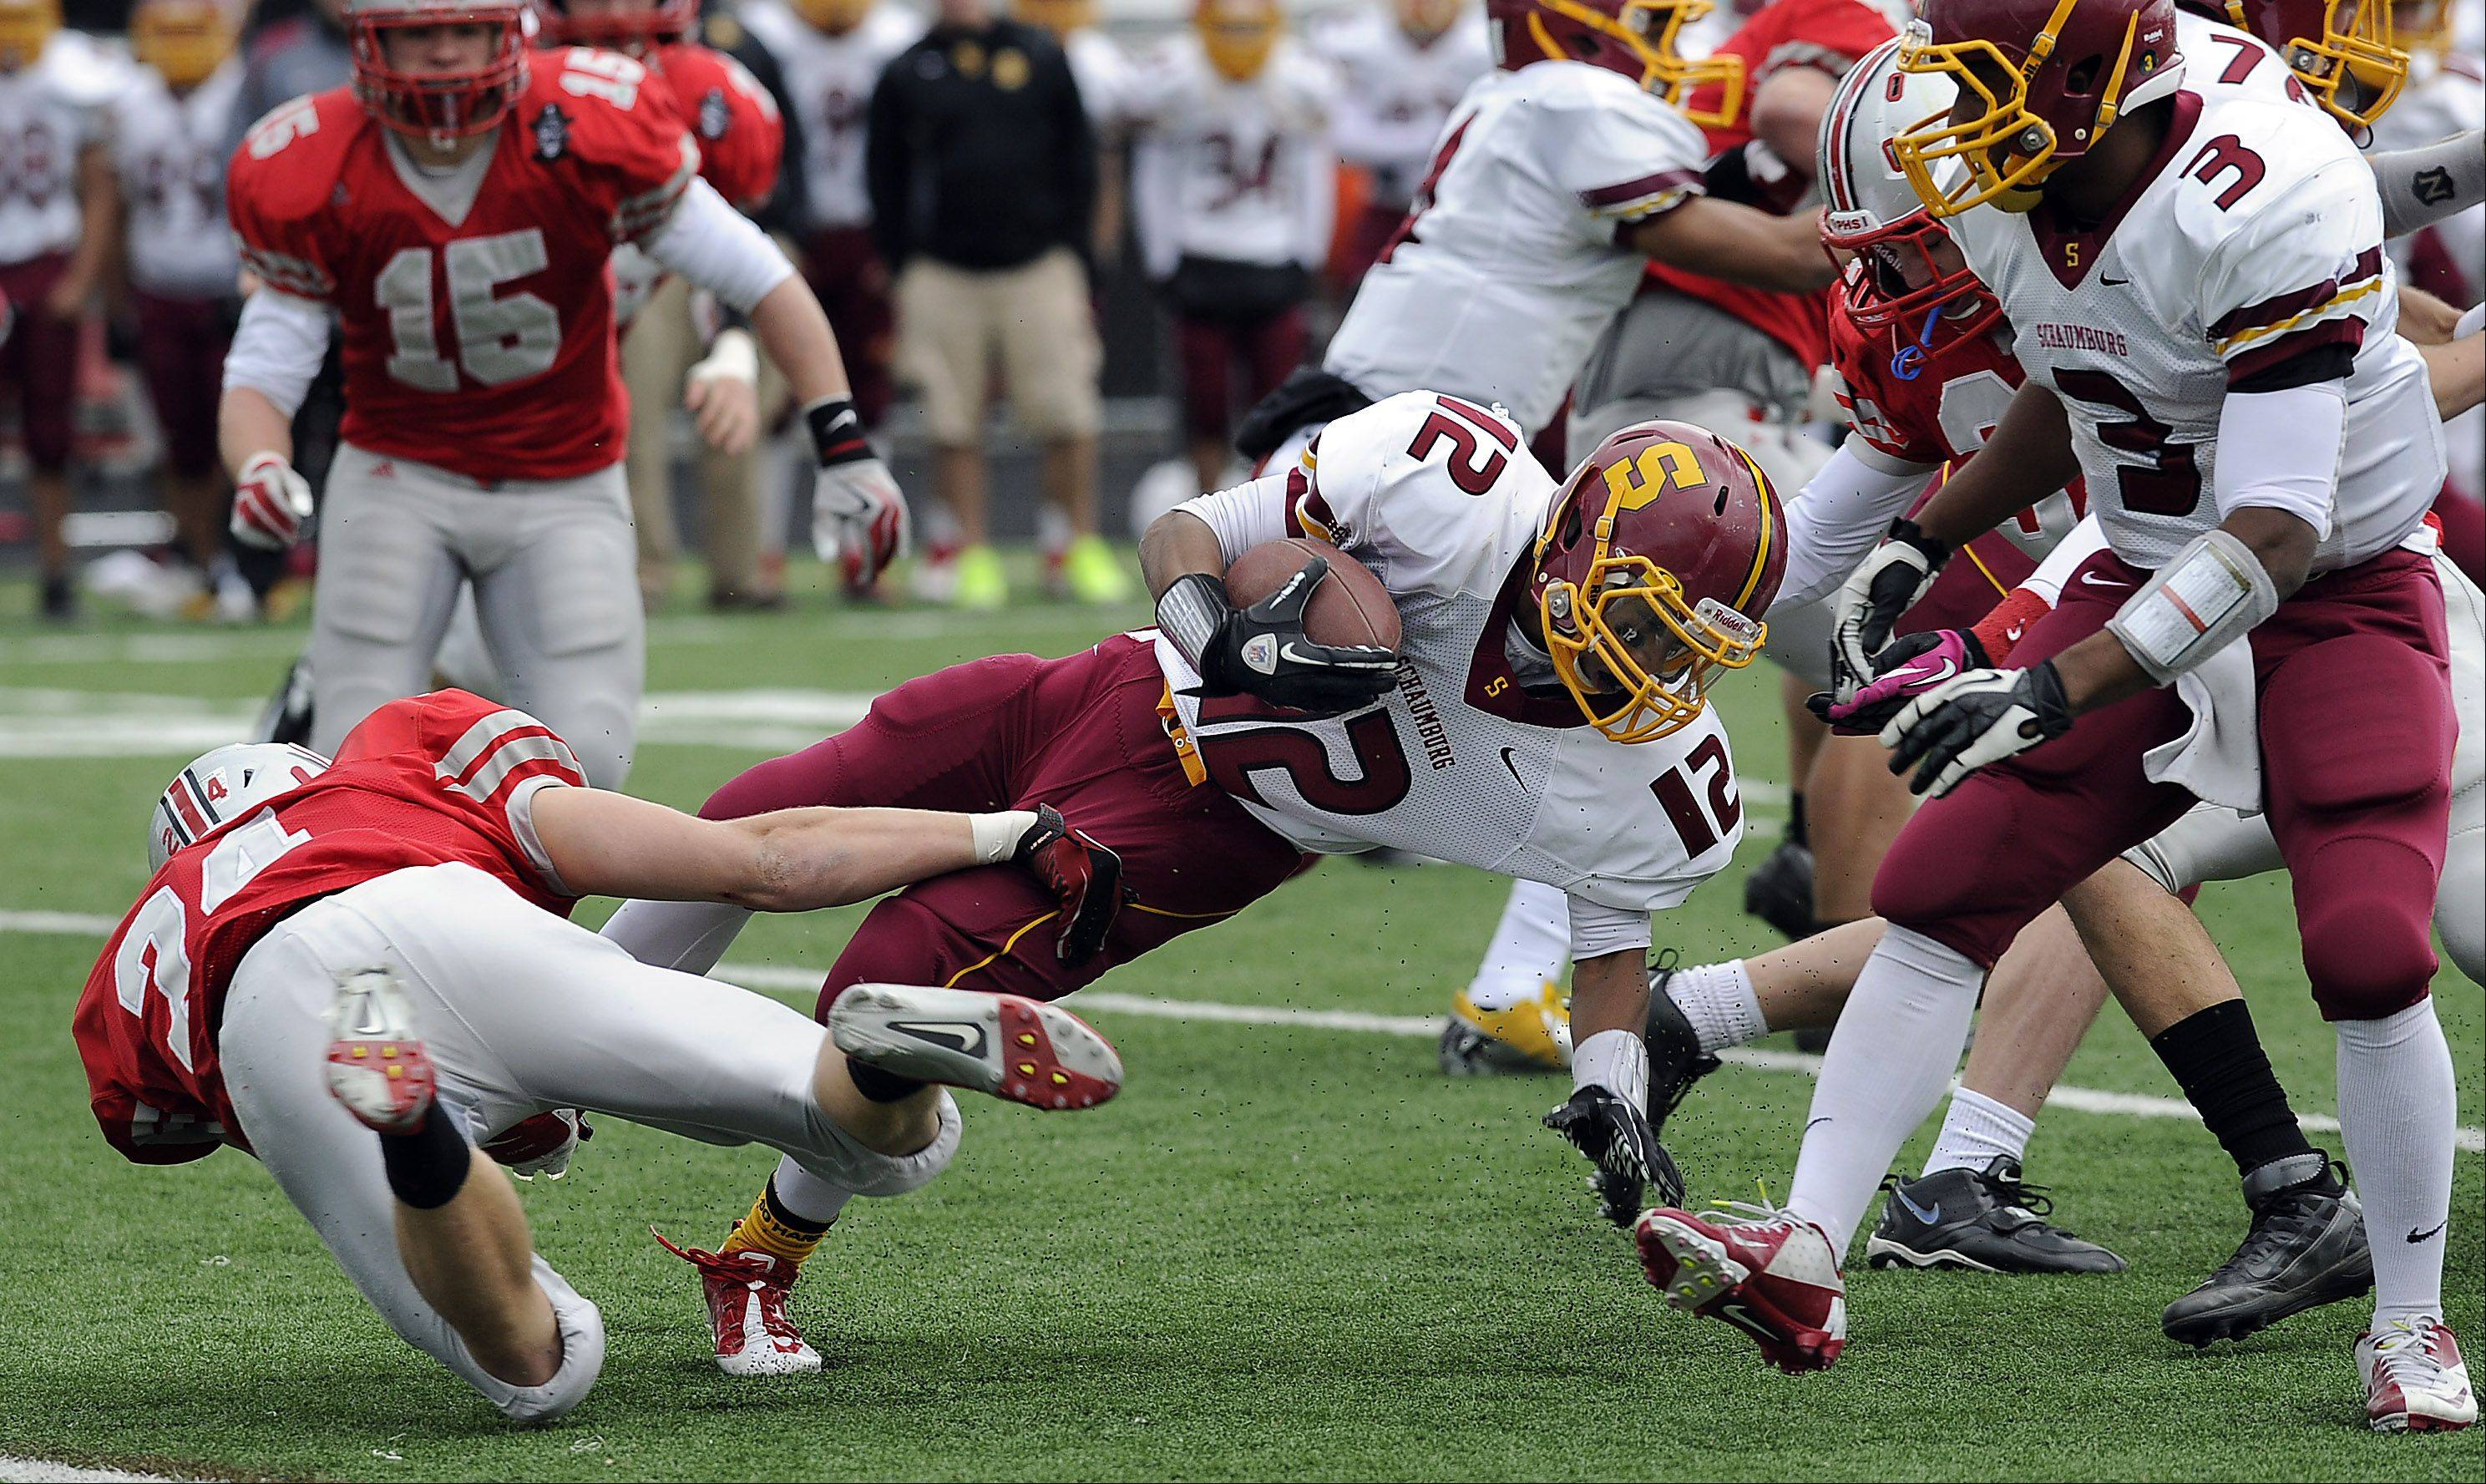 Palatine's Dan Riddle shows remarkable defensive skills on stopping Schaumburg's Stacey Smith behind the line of scrimmage in the Class 8A playoffs at Palatine High School on Saturday.